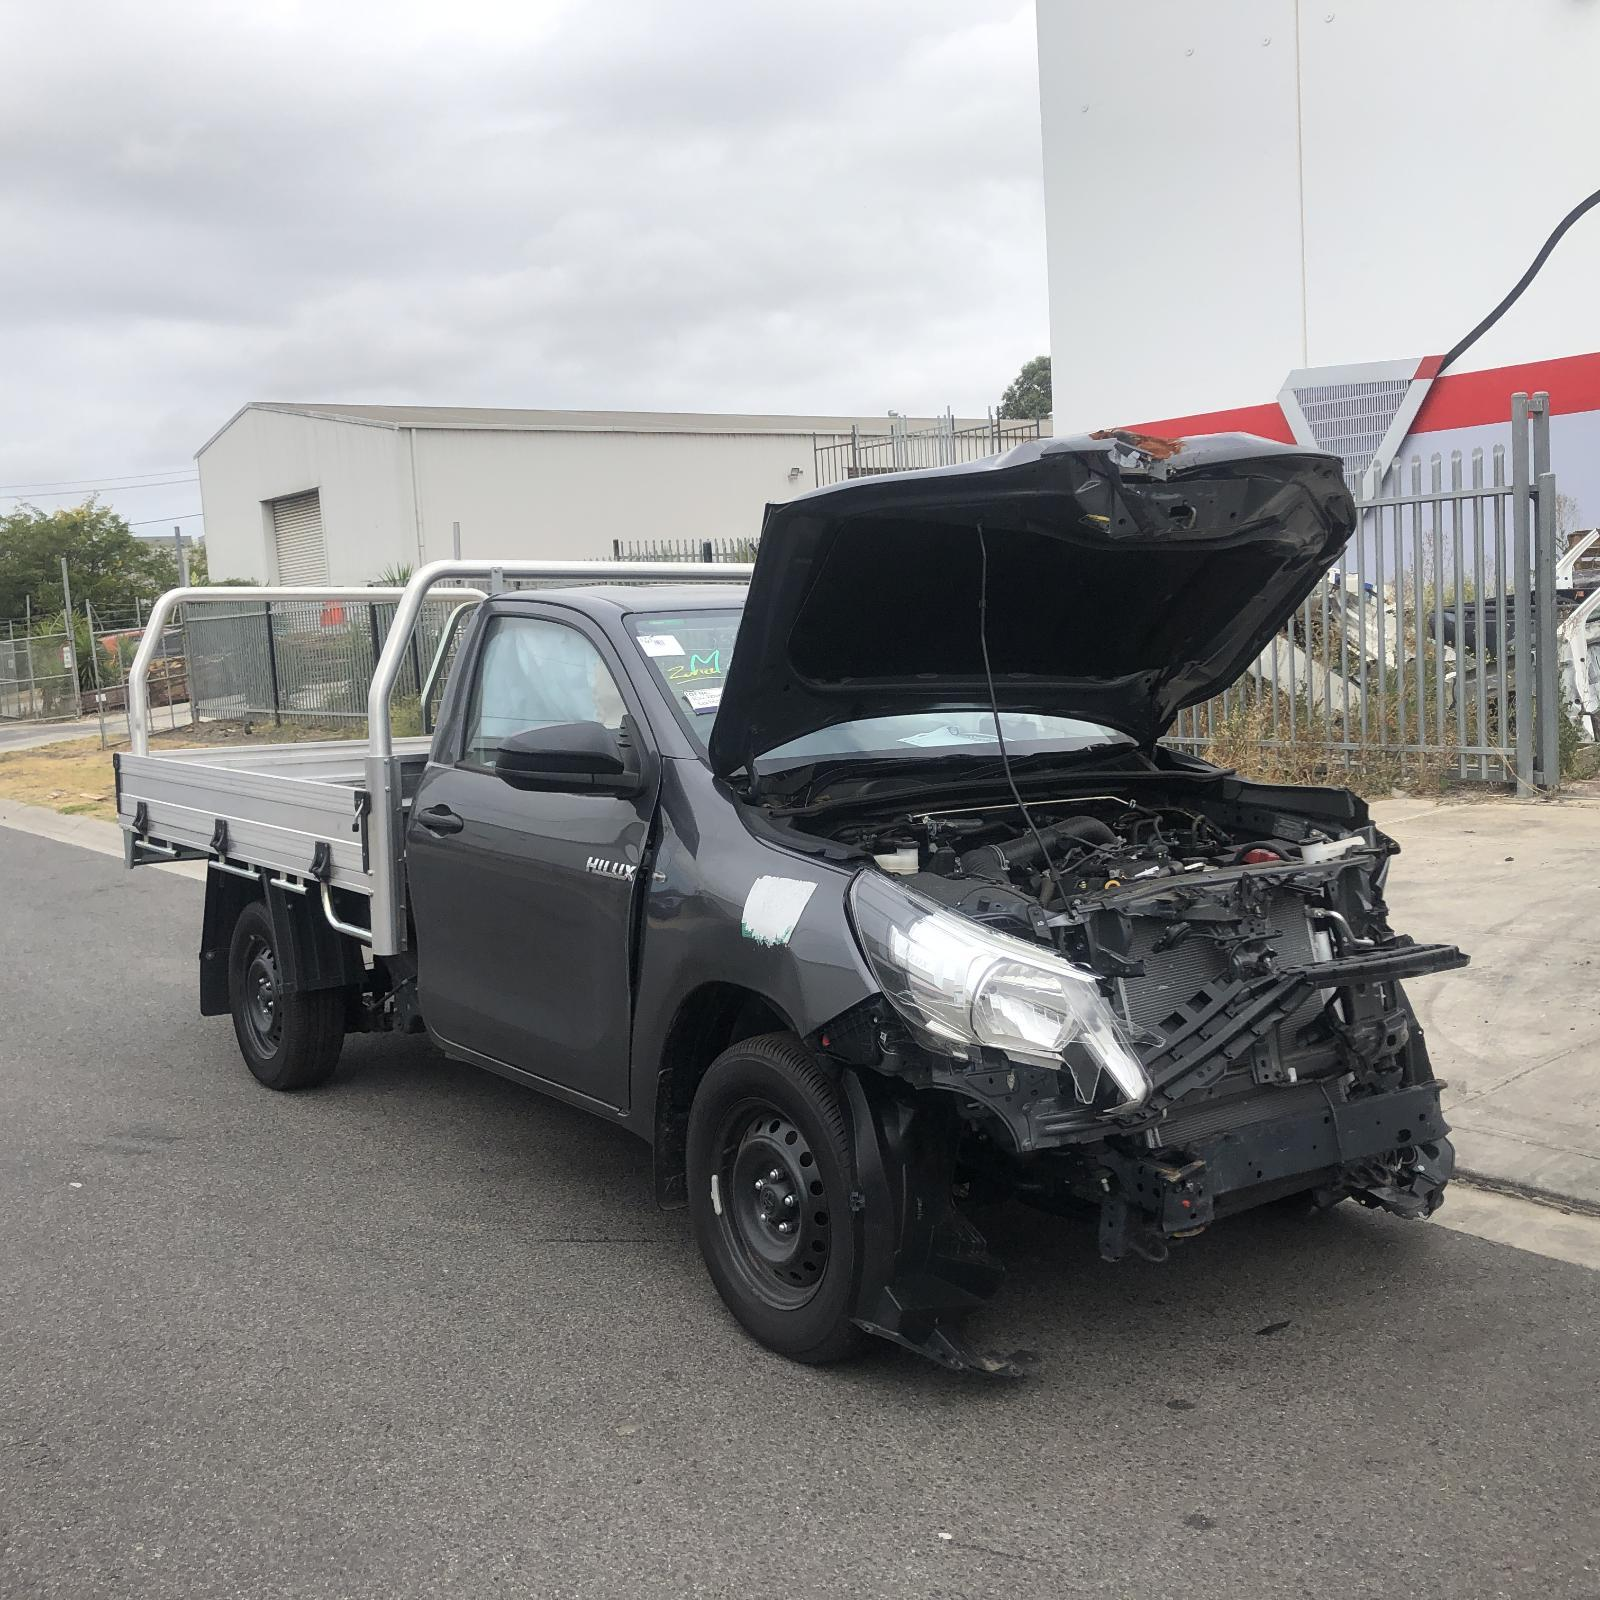 Toyota HILUX SINGLE CAB TGN121 W.7 2TR-FE MANUEL 2WD GEARBOX 09/15-CURRENT